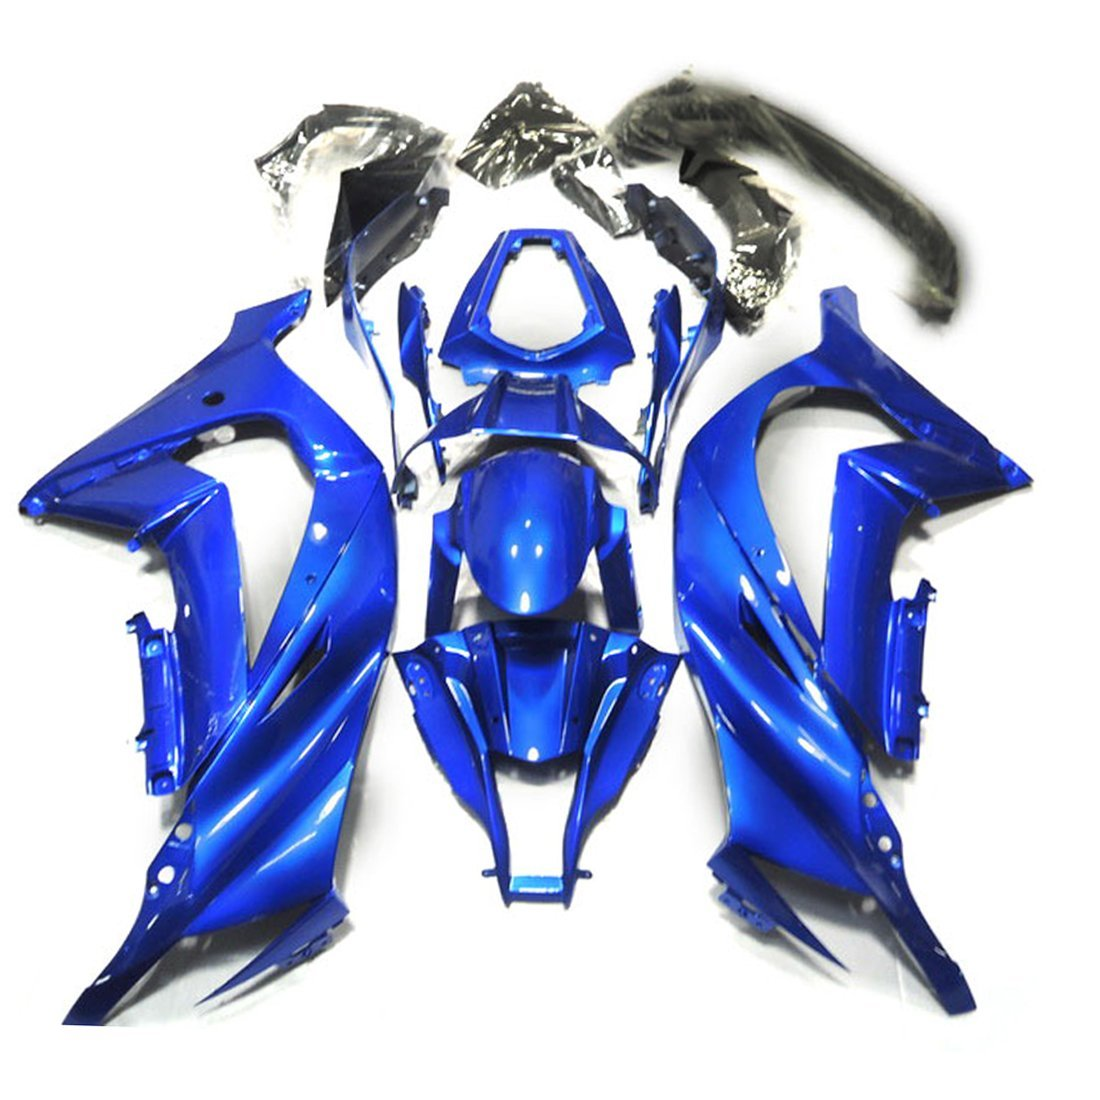 Motorcycle Bodywork Fairing Kit For Kawasaki Ninja ZX-10R ZX10R 2011 2012 2013 ZX 10R 11 12 13 Injection Fairings Blue UV Paint bigbang 2012 bigbang live concert alive tour in seoul release date 2013 01 10 kpop